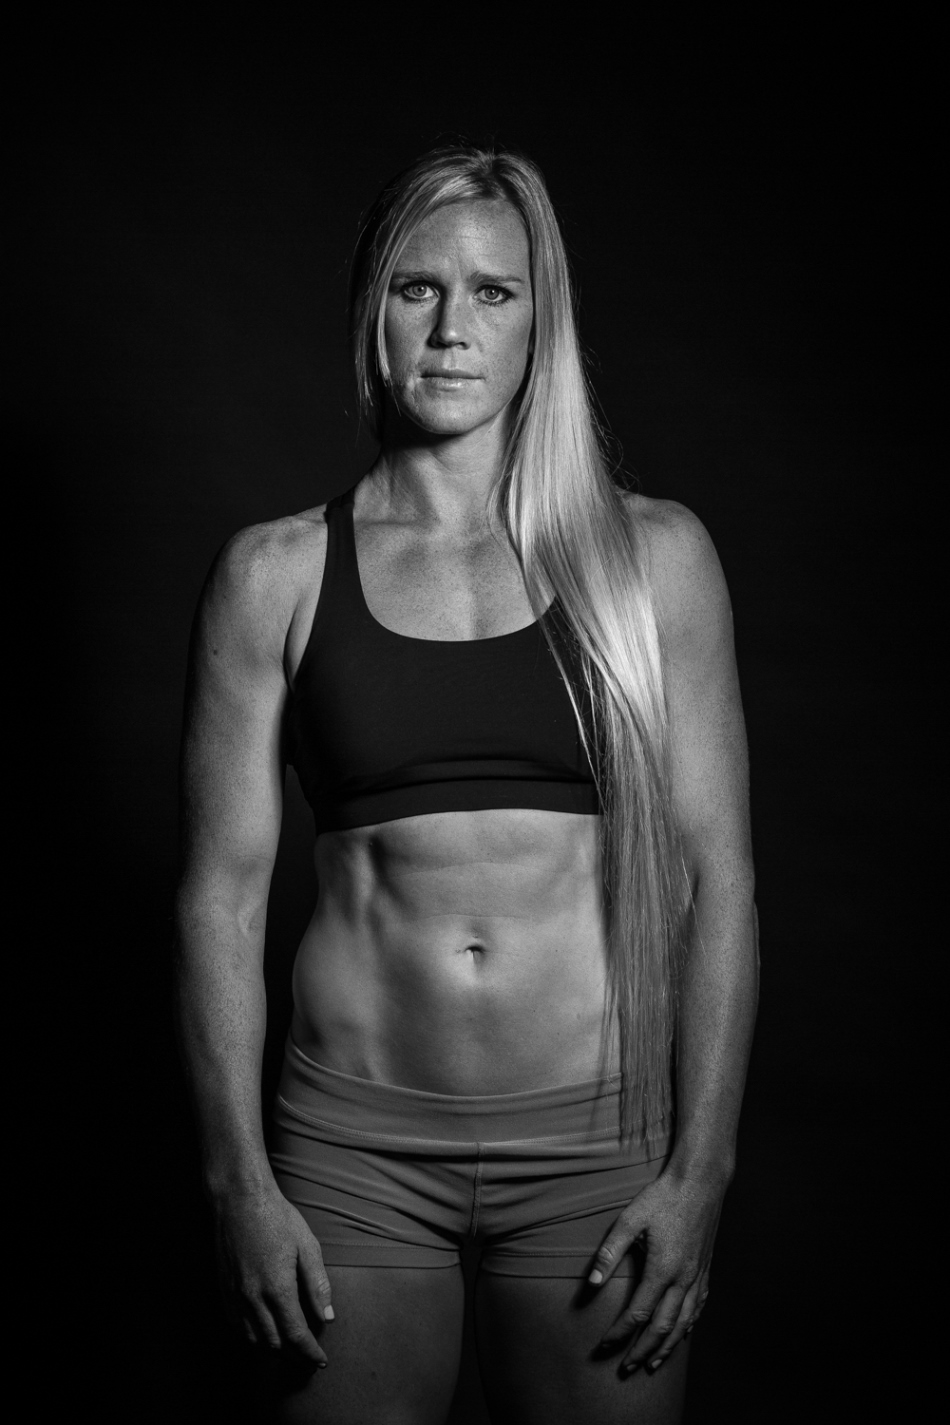 TheFappening : Holly Holm Nude Leaked